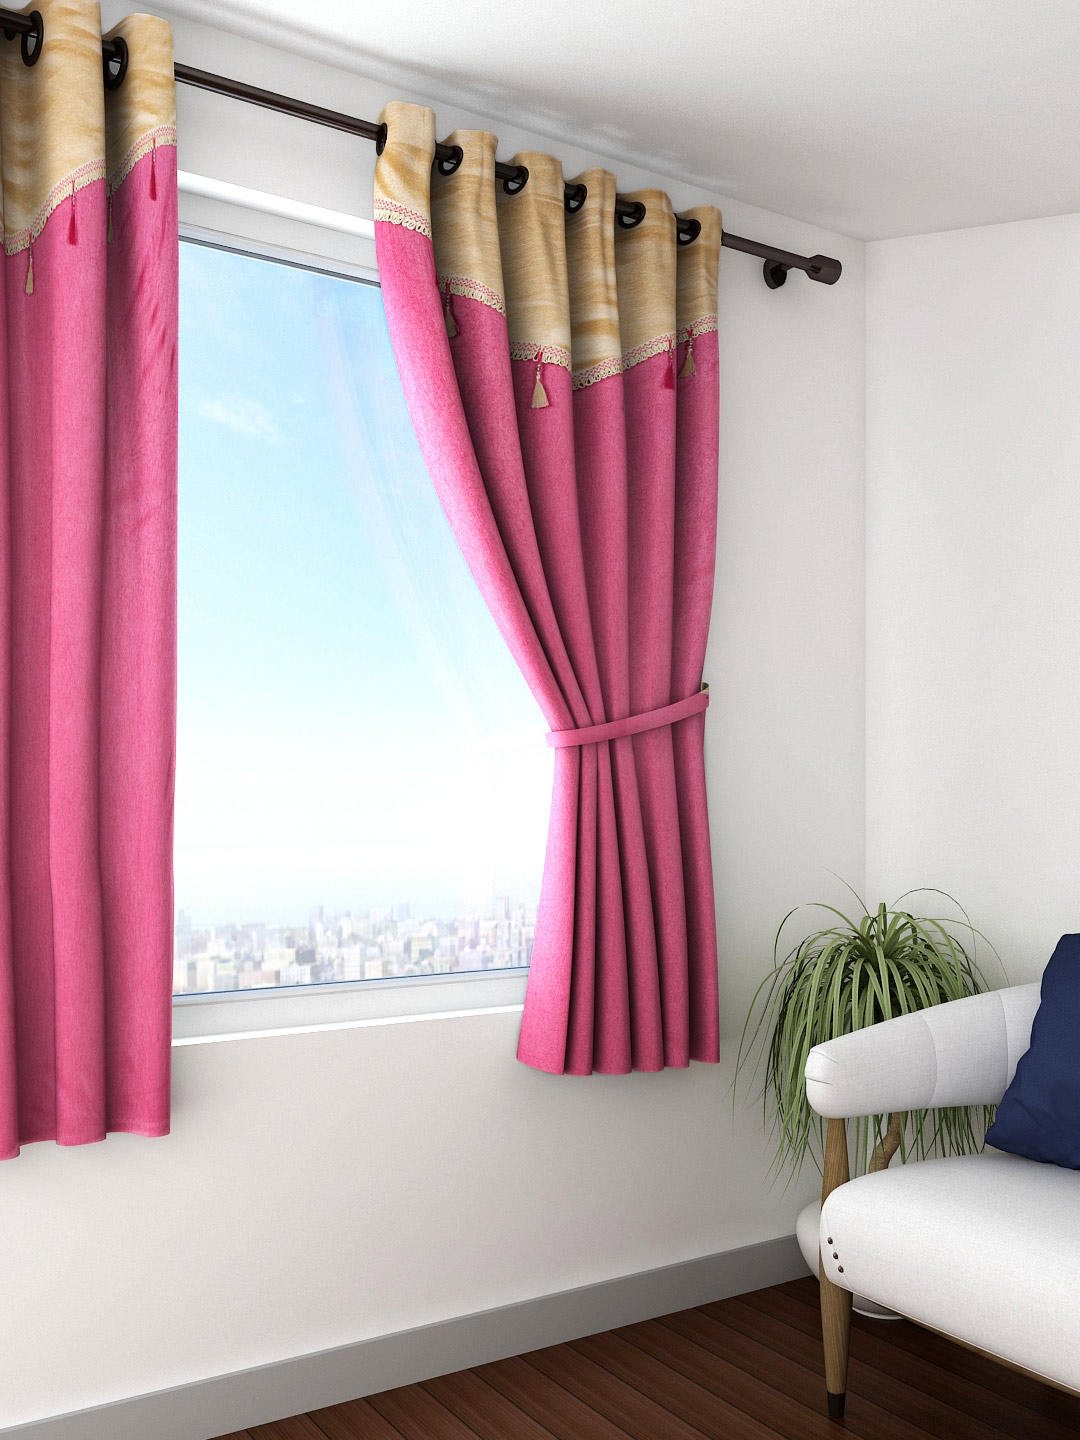 attractive tension pattern ceiling mount hardware interesting walmart single amusing ideas cushions window bay shower iron rod target curtains with black together skirt curtain and mesmerizing rods used